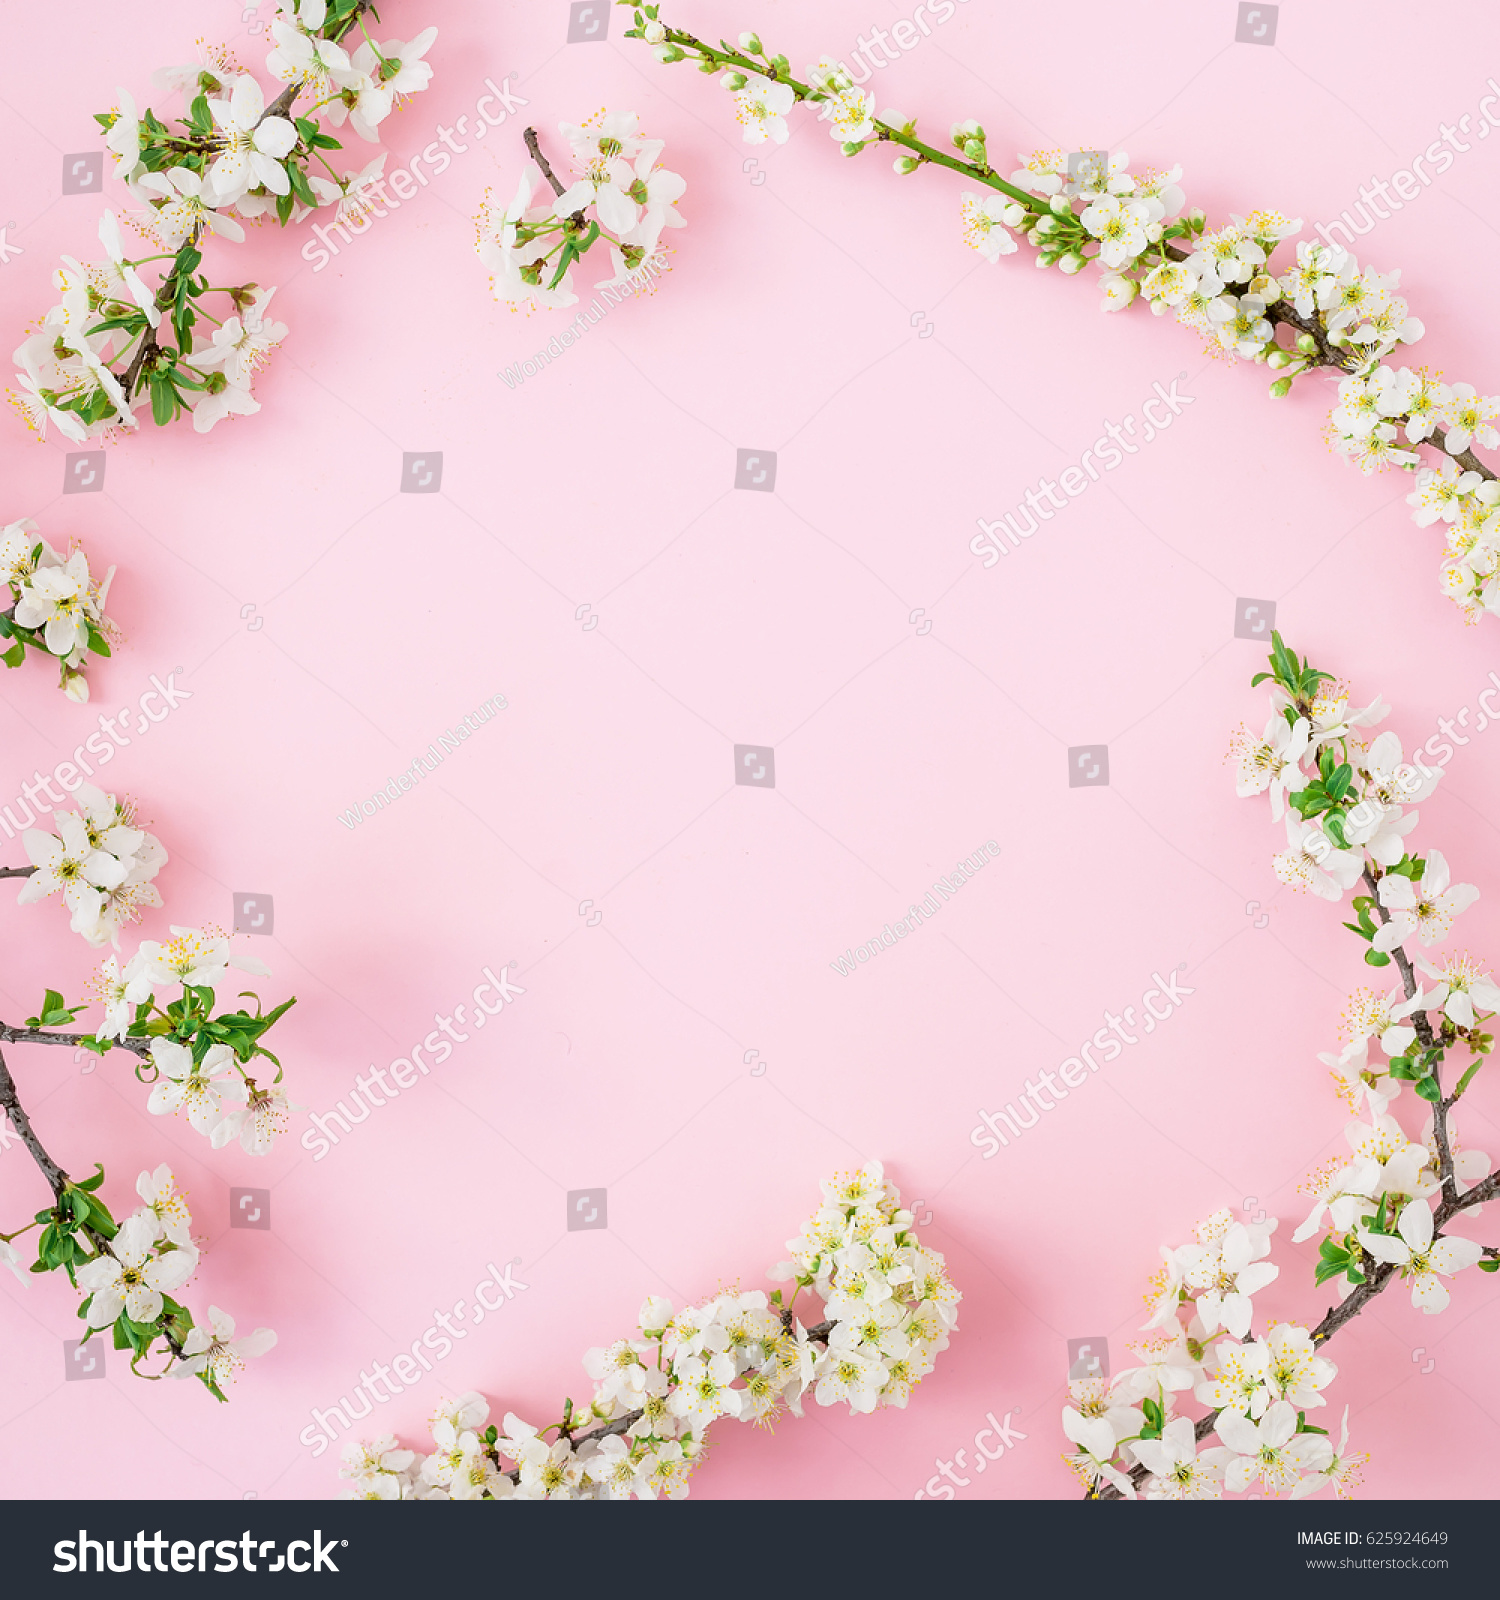 Spring Time Background Floral Frame Of Spring White Flowers On Pink